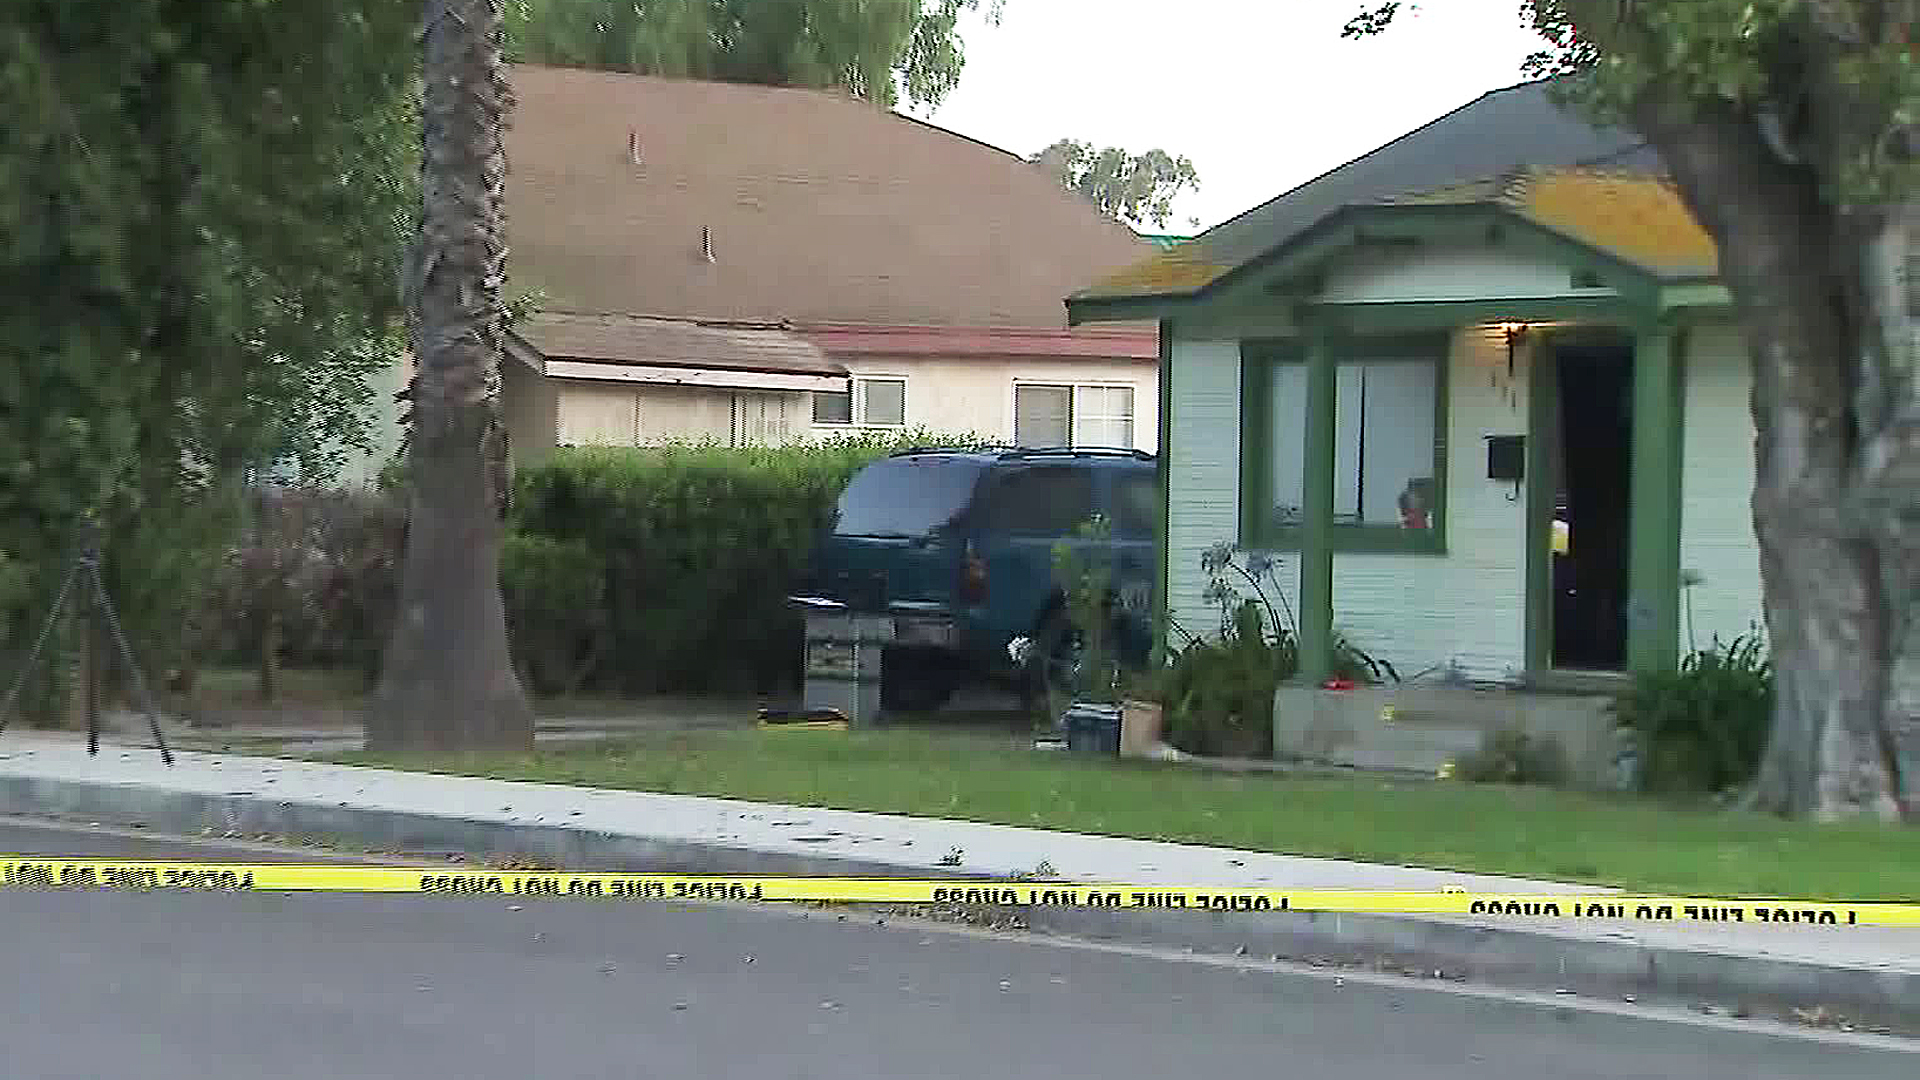 Police investigate a shooting in Port Hueneme on July 2, 2019. (Credit: KTLA)